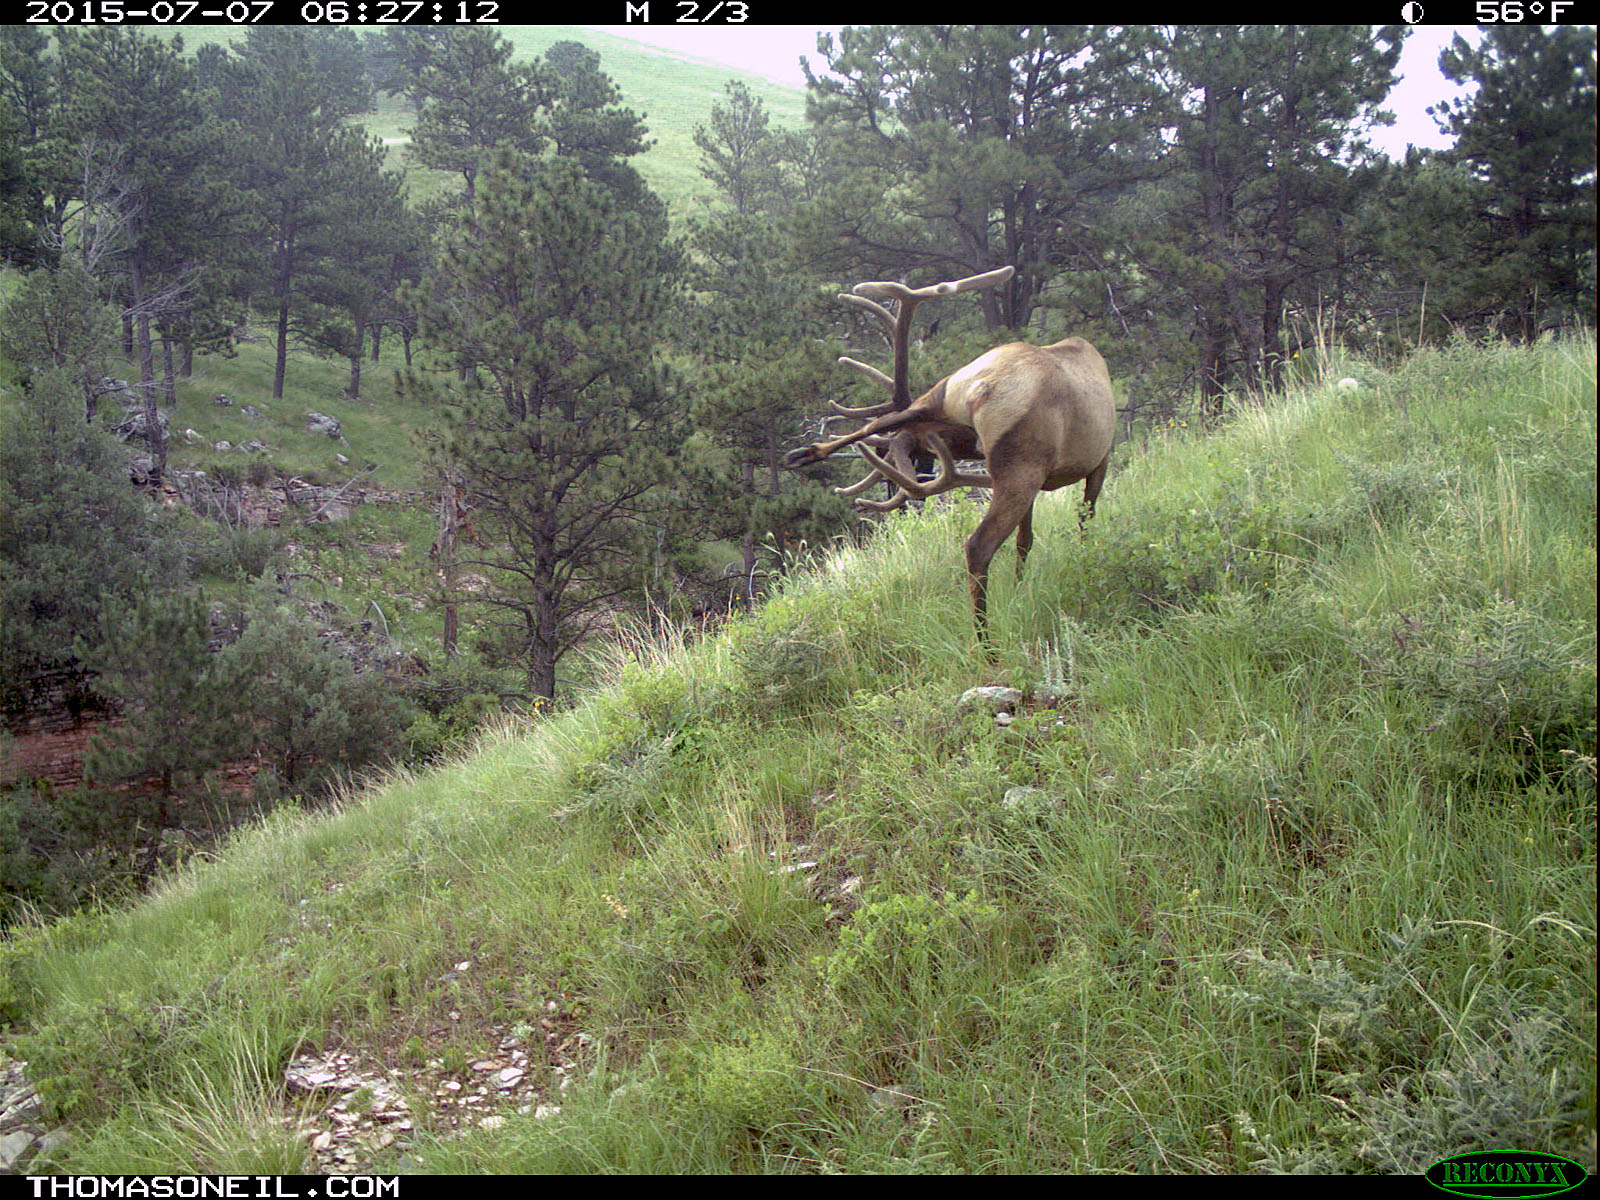 Elk scratching sequence on trailcam, 3 of 7, Wind Cave National Park, July 2015,